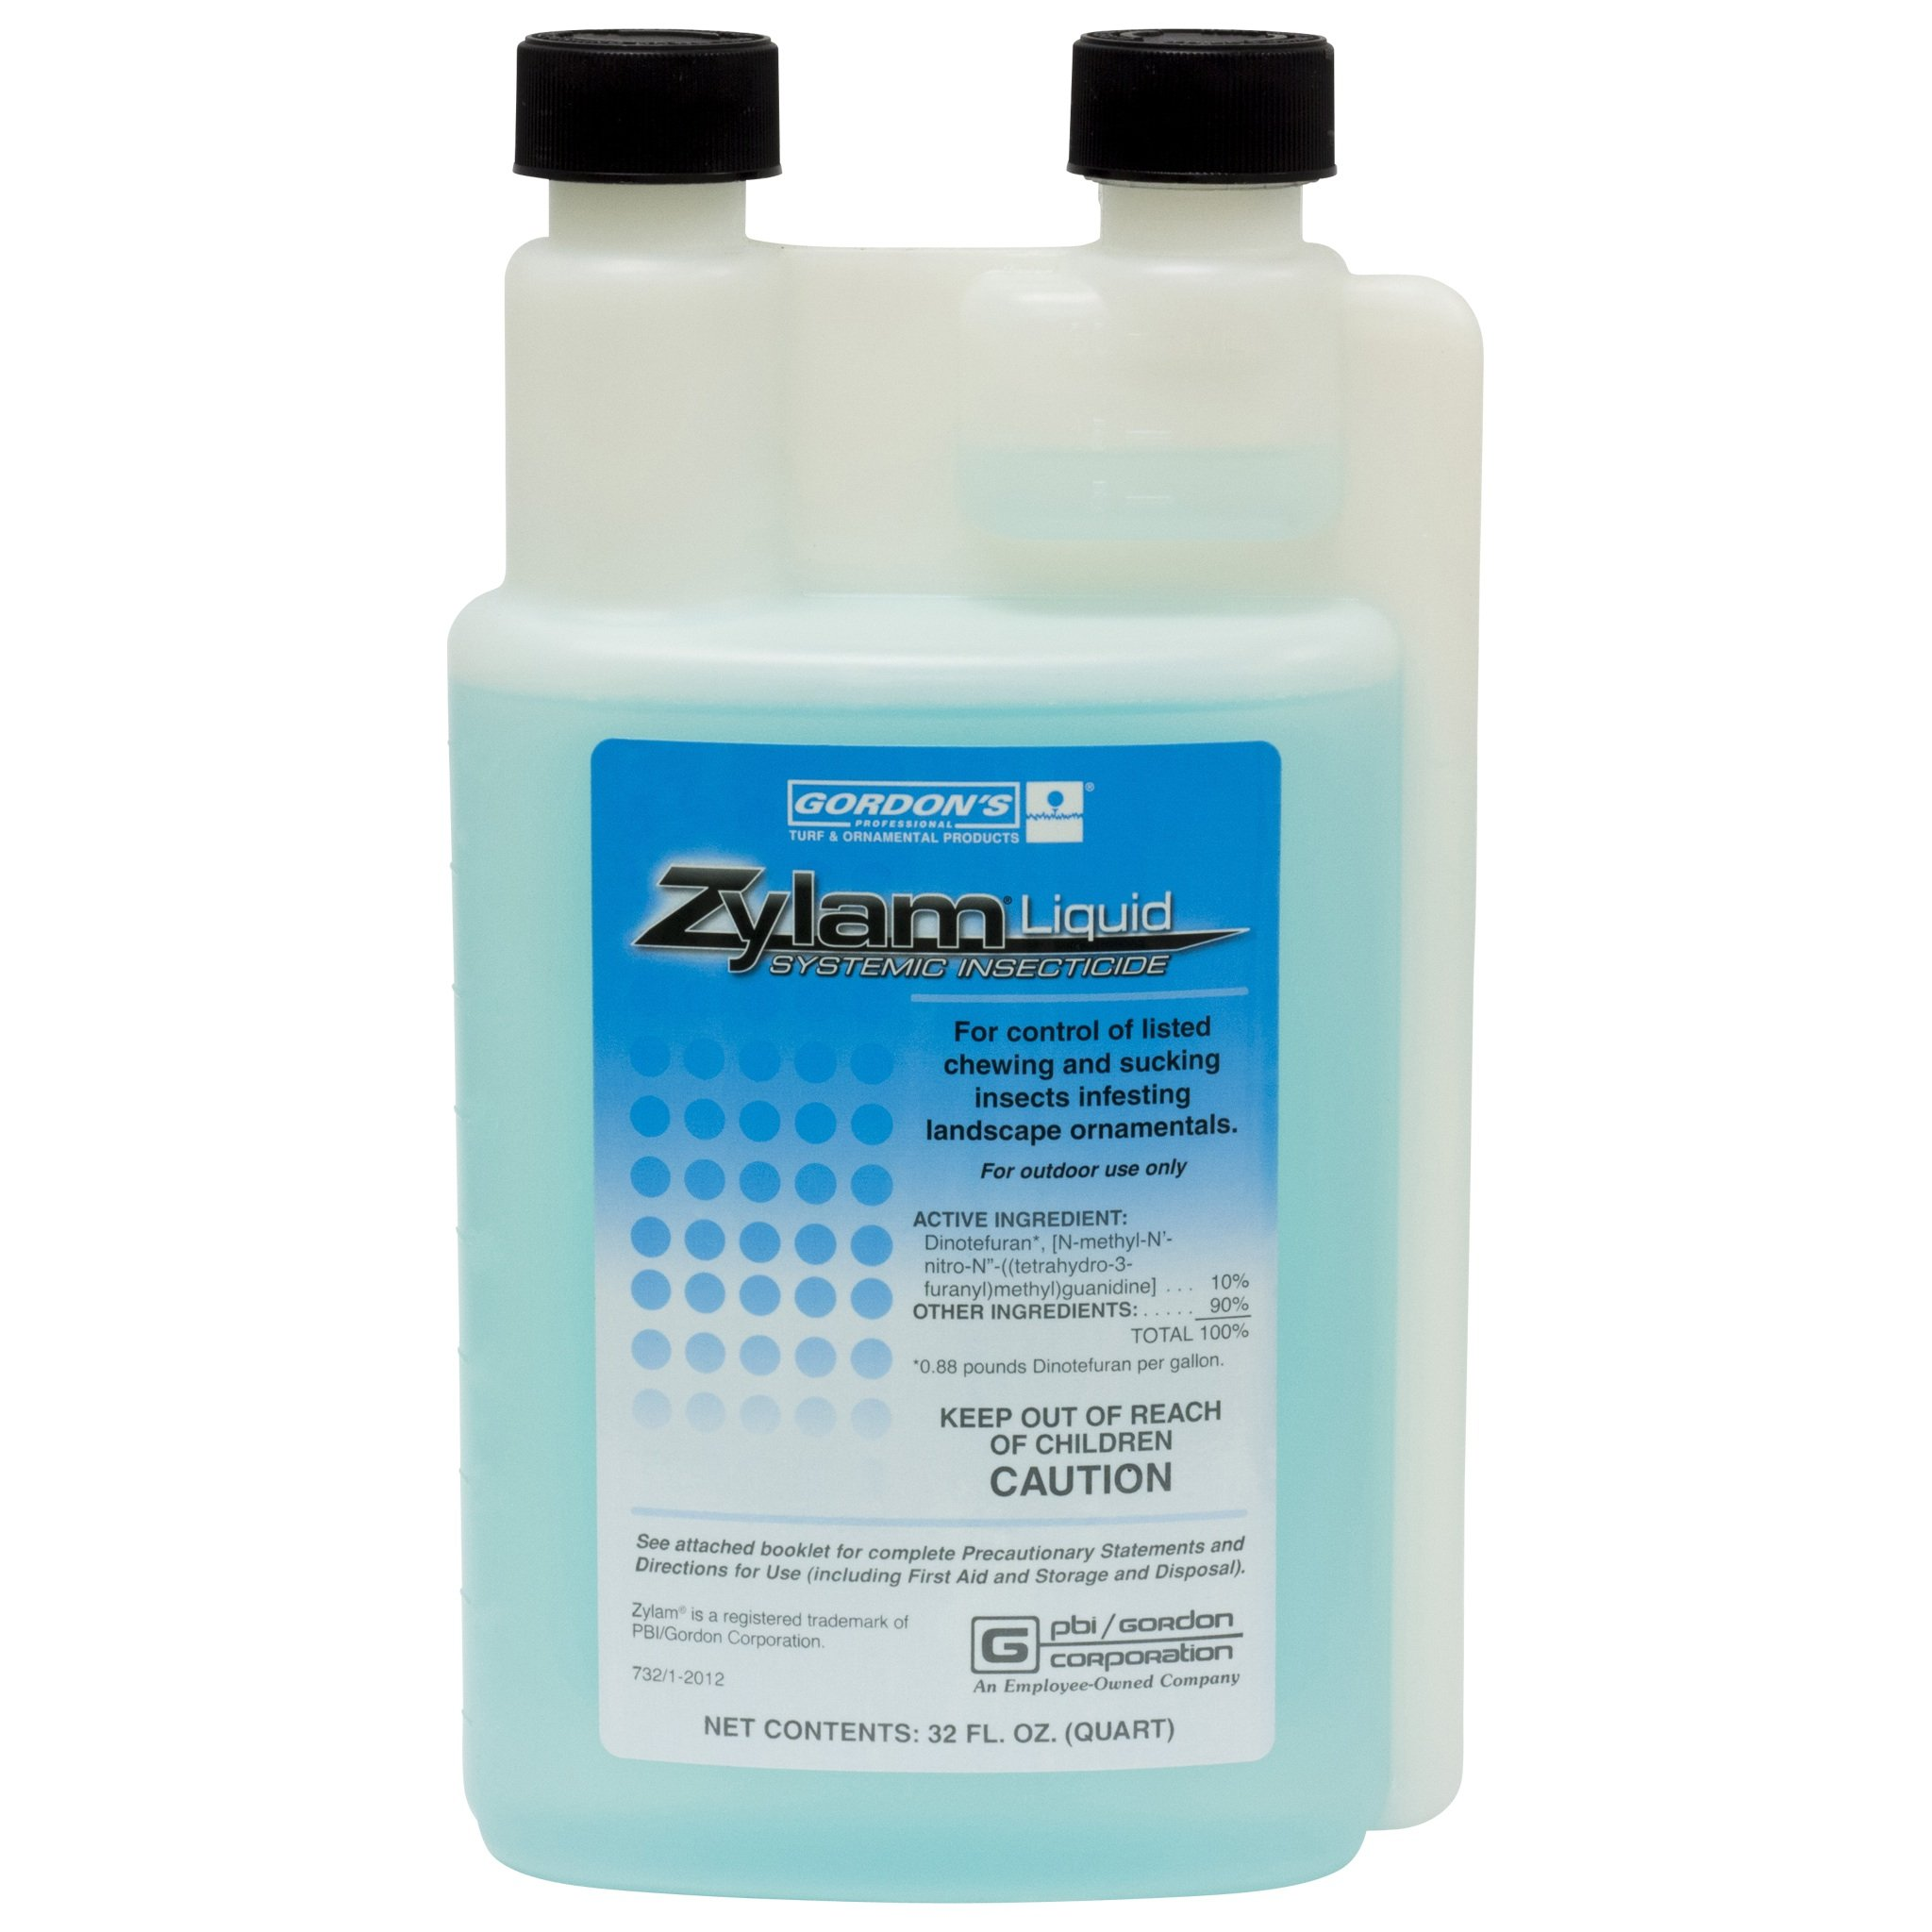 Zylam 32oz Liquid Systemic Insecticide 10% Dinotefuran